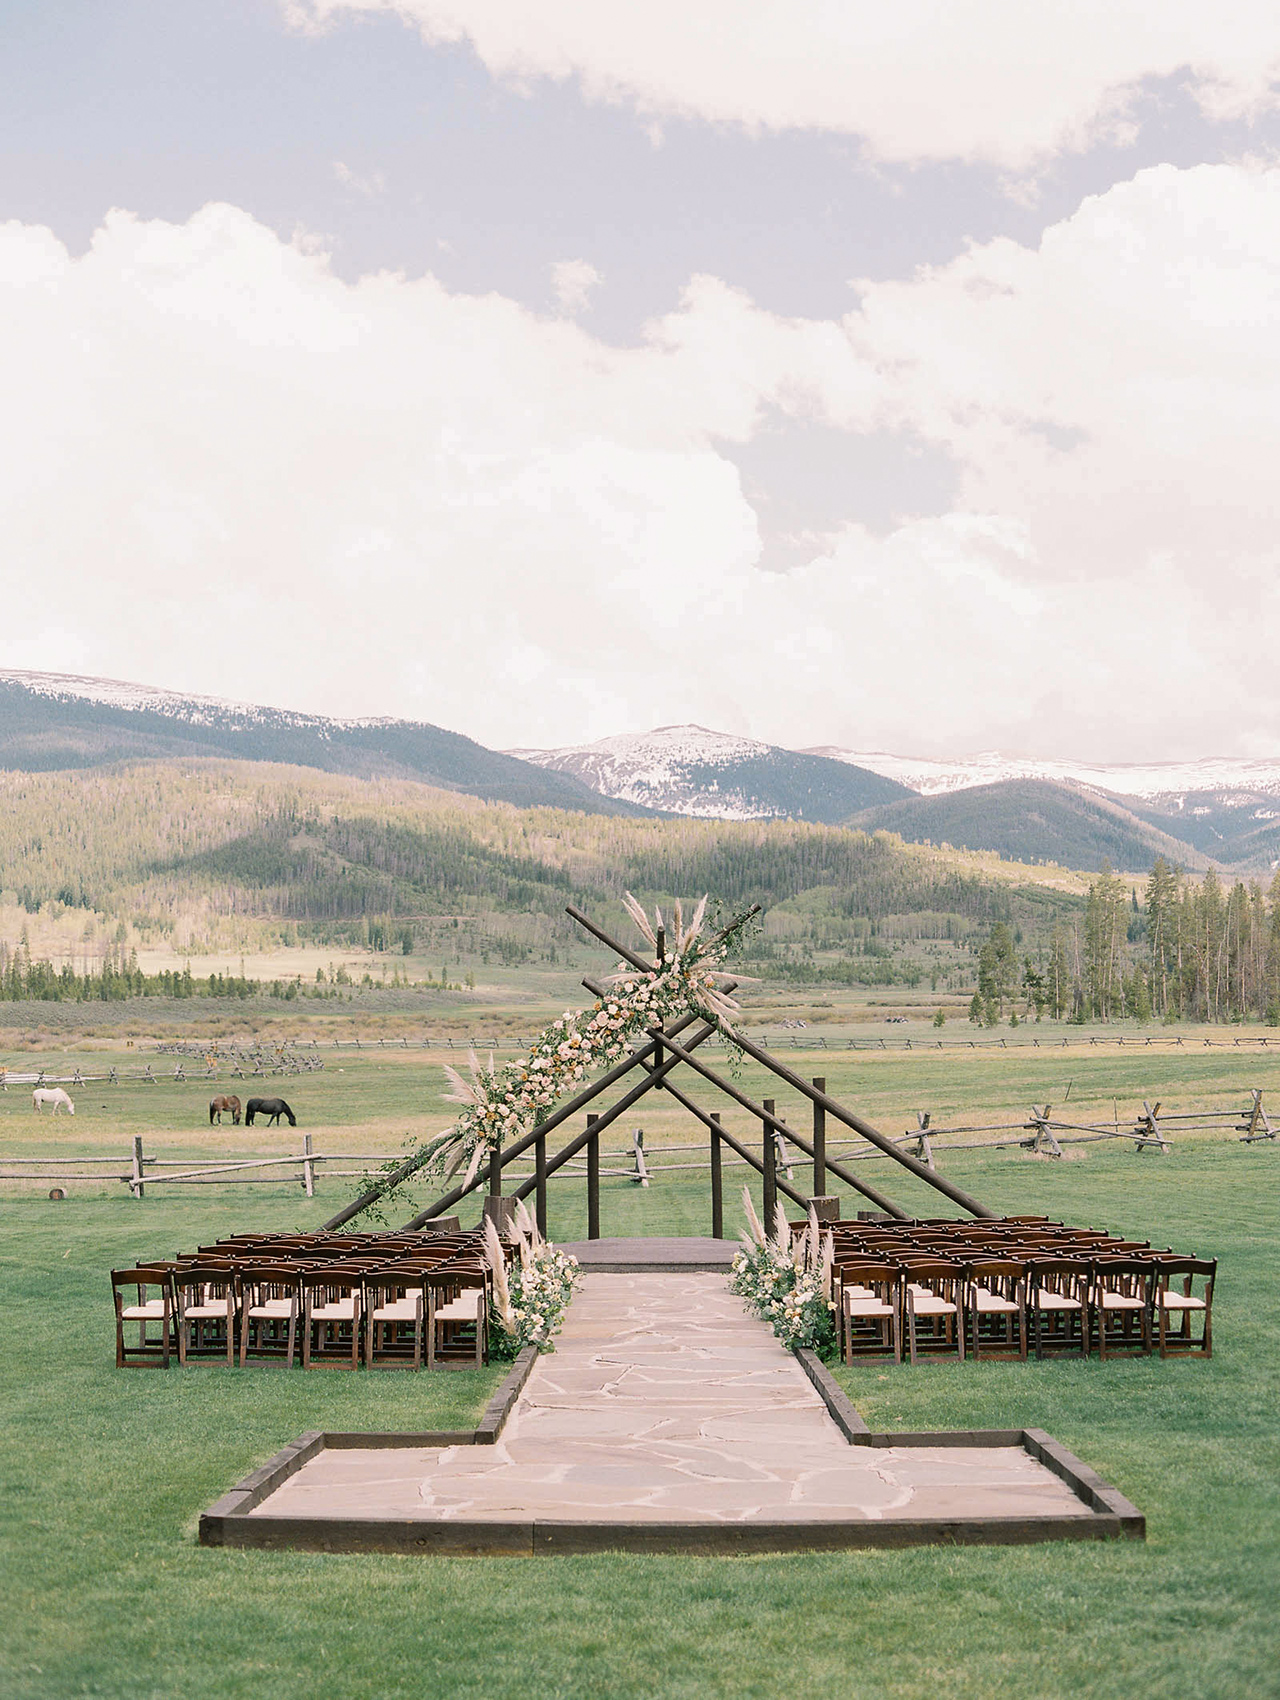 wedding ceremony wooden teepee structure mountain view